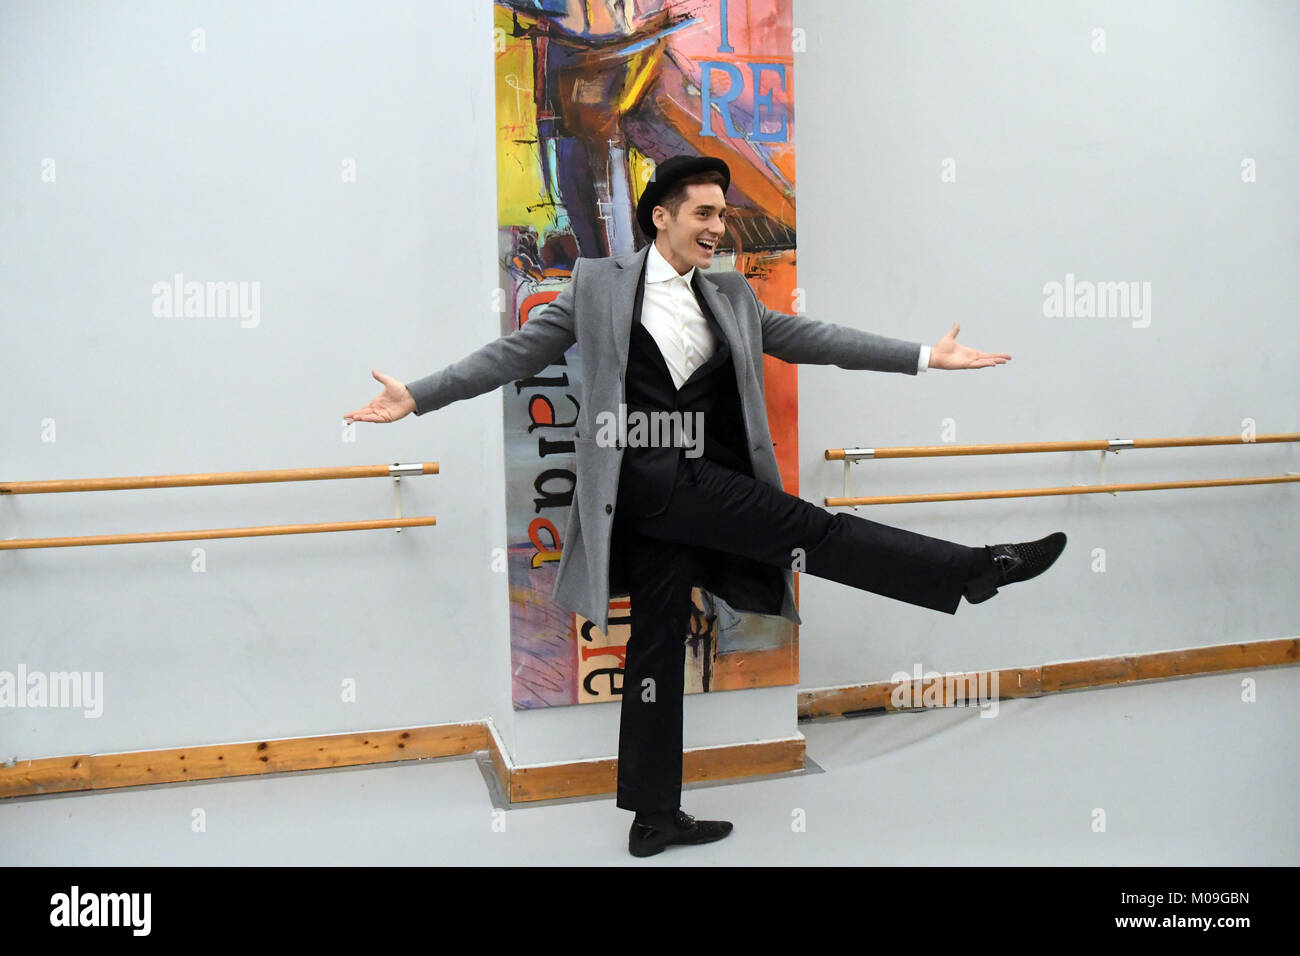 Rome Italy 19 January 2018 - Inauguration of the ballet dance center in Rome,special guest Vincenzo Mingolla - Stock Image